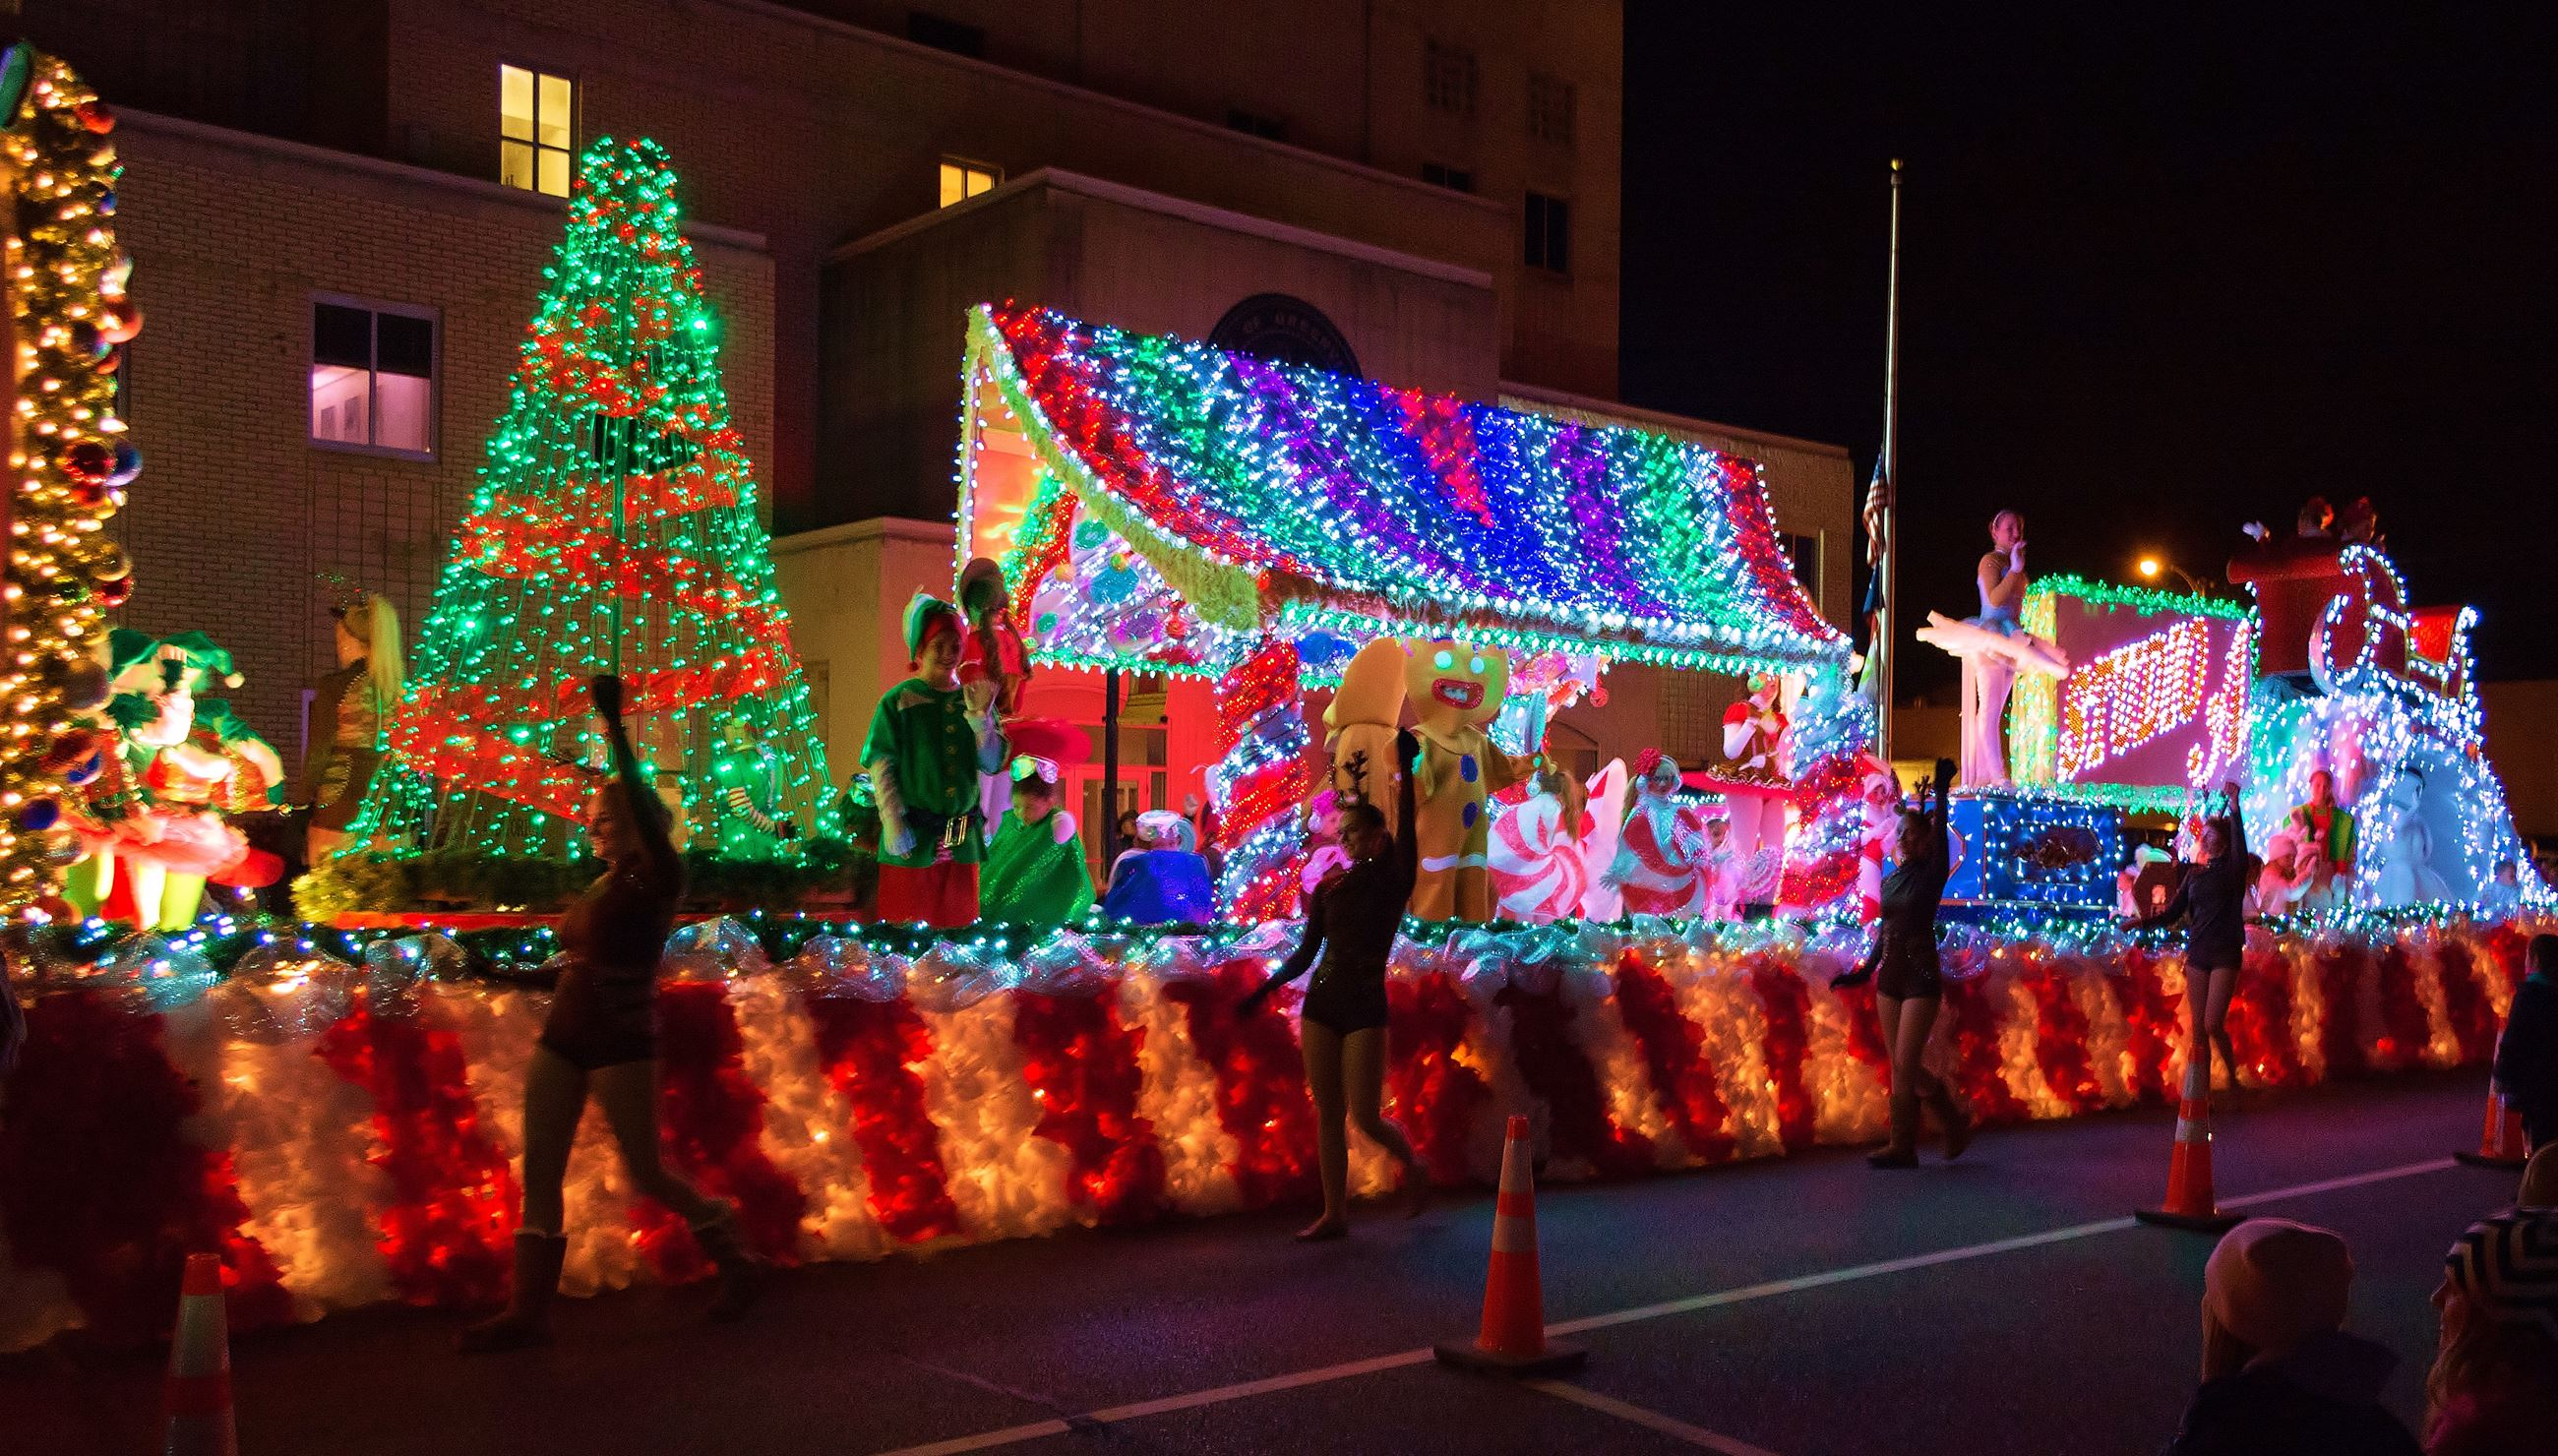 2021 Greenville Sc Christmas Parade Christmas Parade Weather Permitting Other Holiday Events This Weekend In Greenville 88 9 Ketr